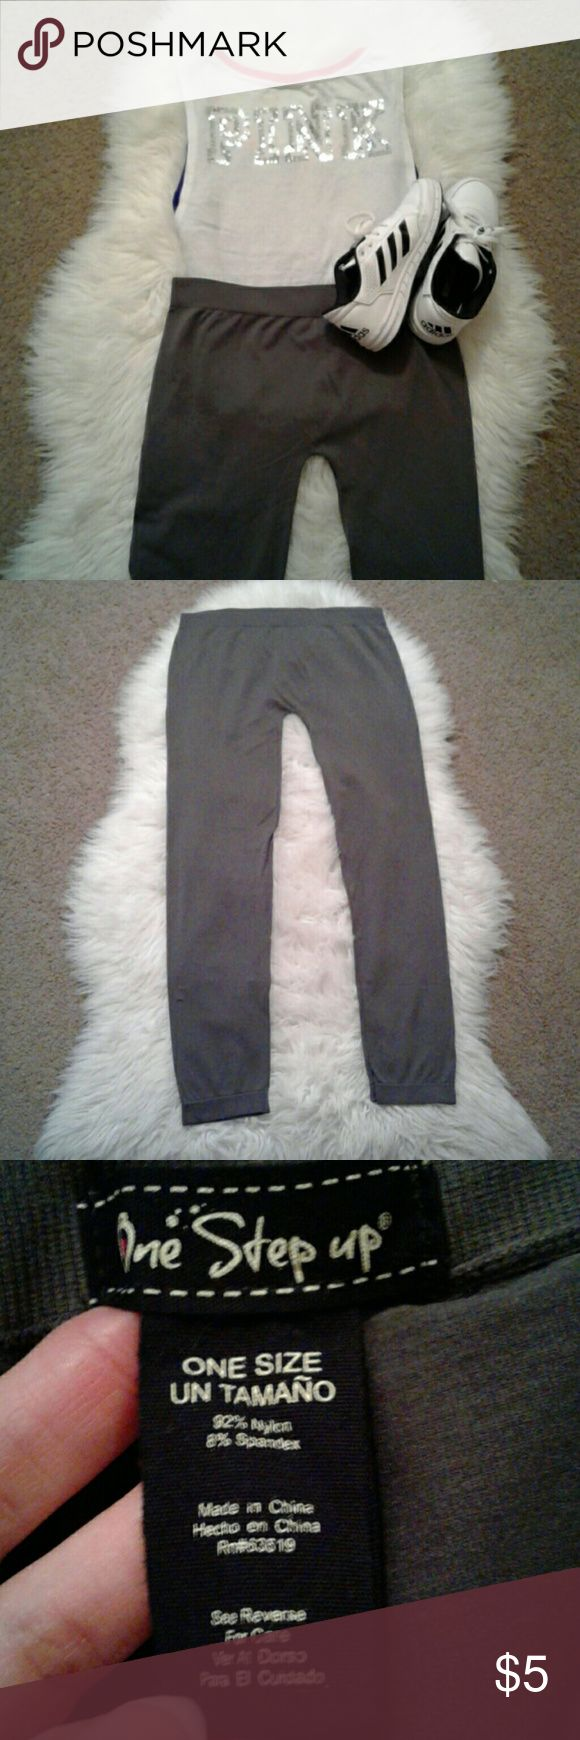 "One Size Gray Athletic WorkOut Yoga Leggings Preloved Condition Stretch waist Waist: 14""( laying flat) Inseam: 27"" Front Rise: 8.5"" boutique Pants Leggings"